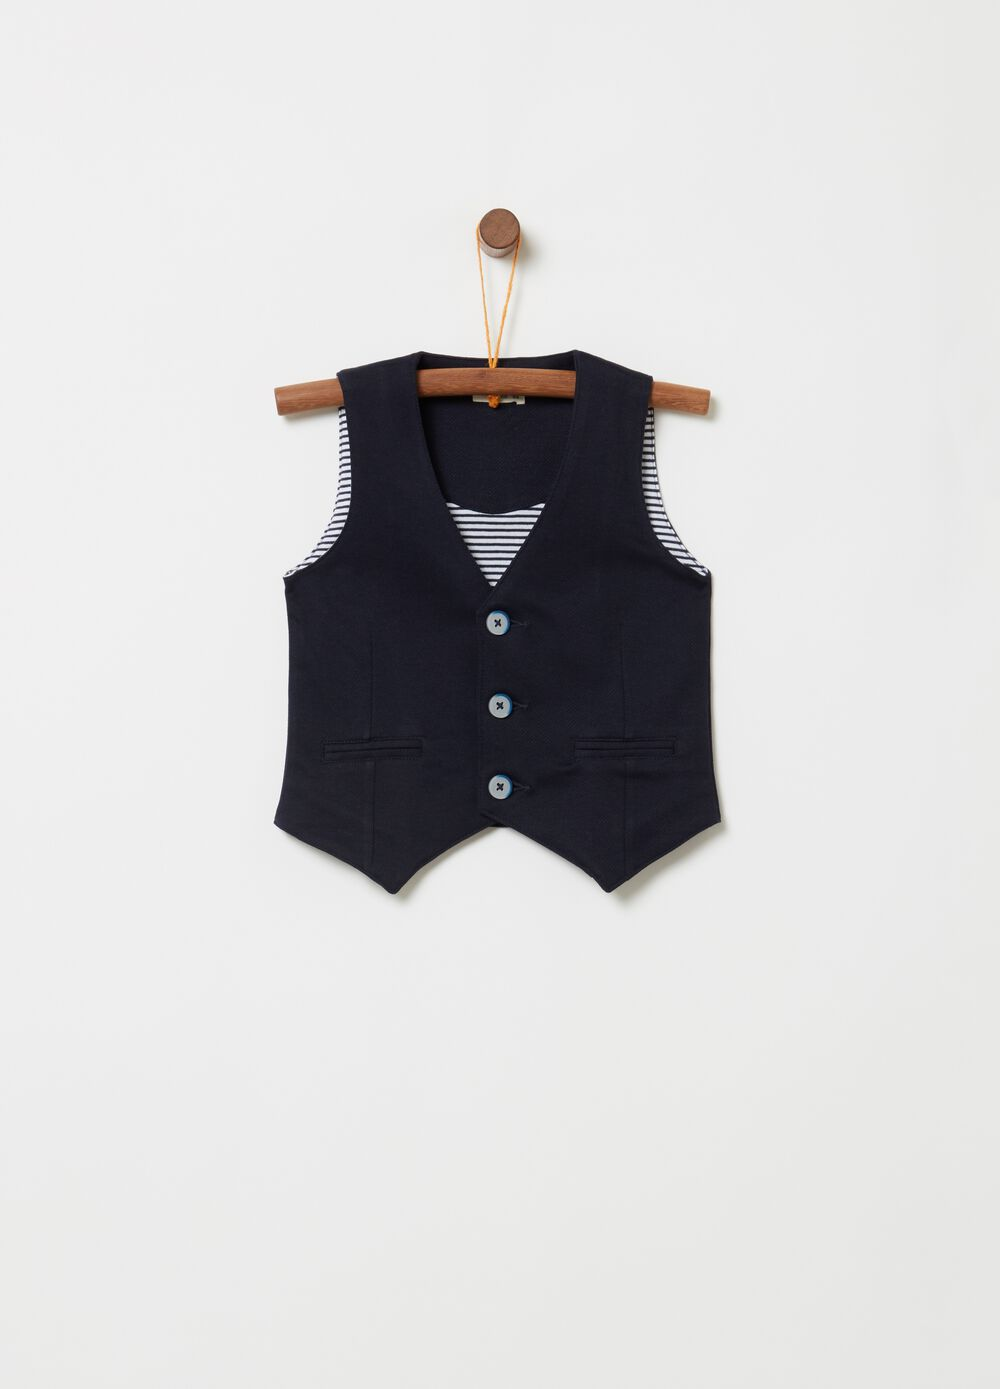 Elegant gilet in knitted fabric